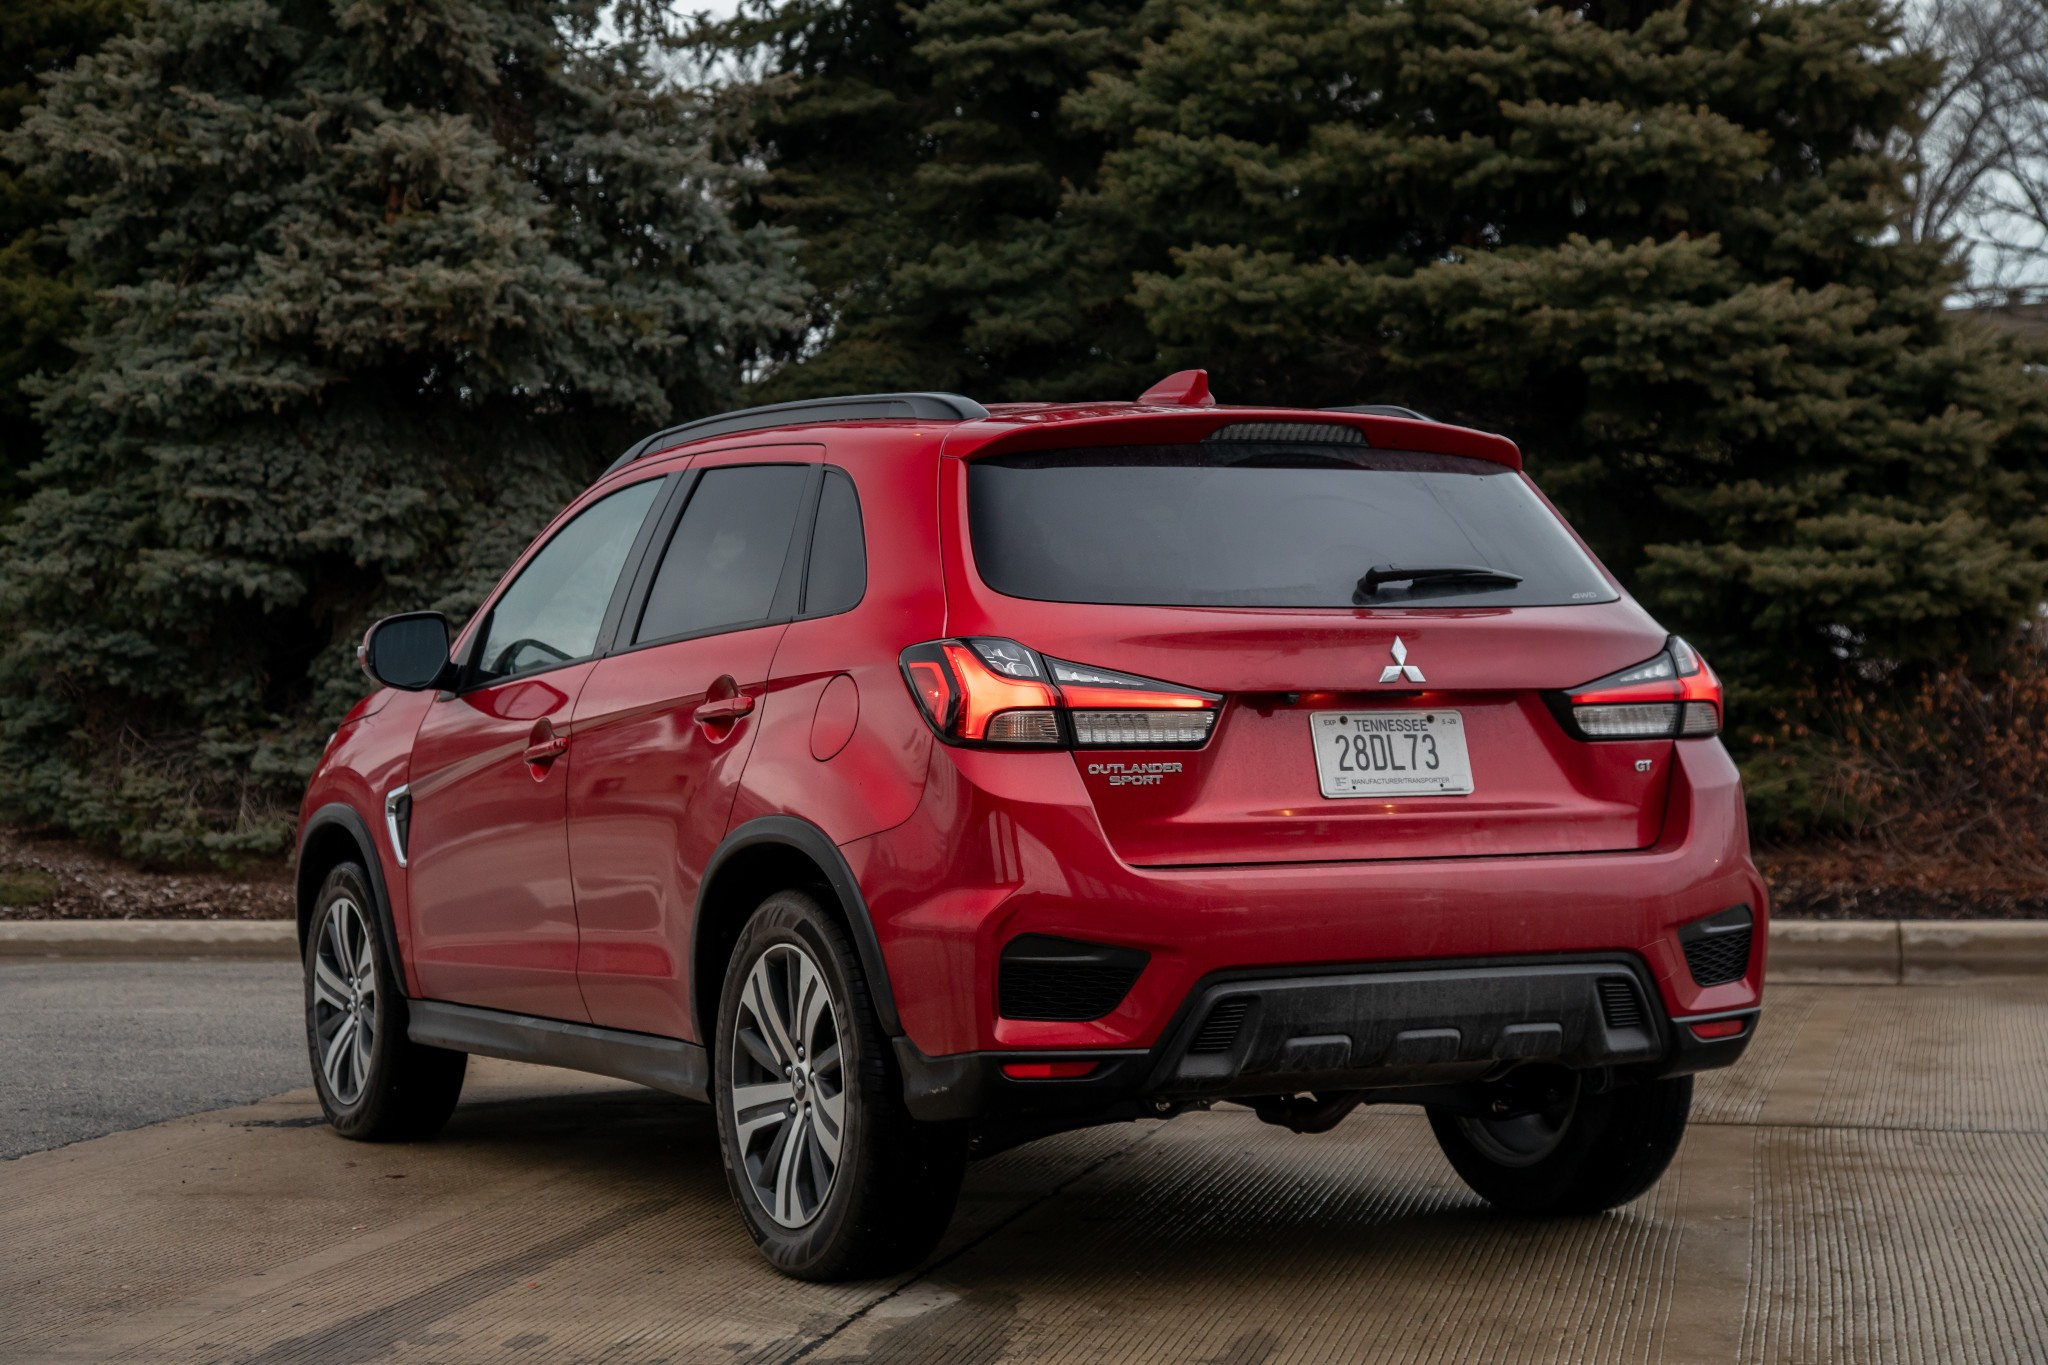 2020 Mitsubishi Outlander Sport: 3 Pros and 5 Cons